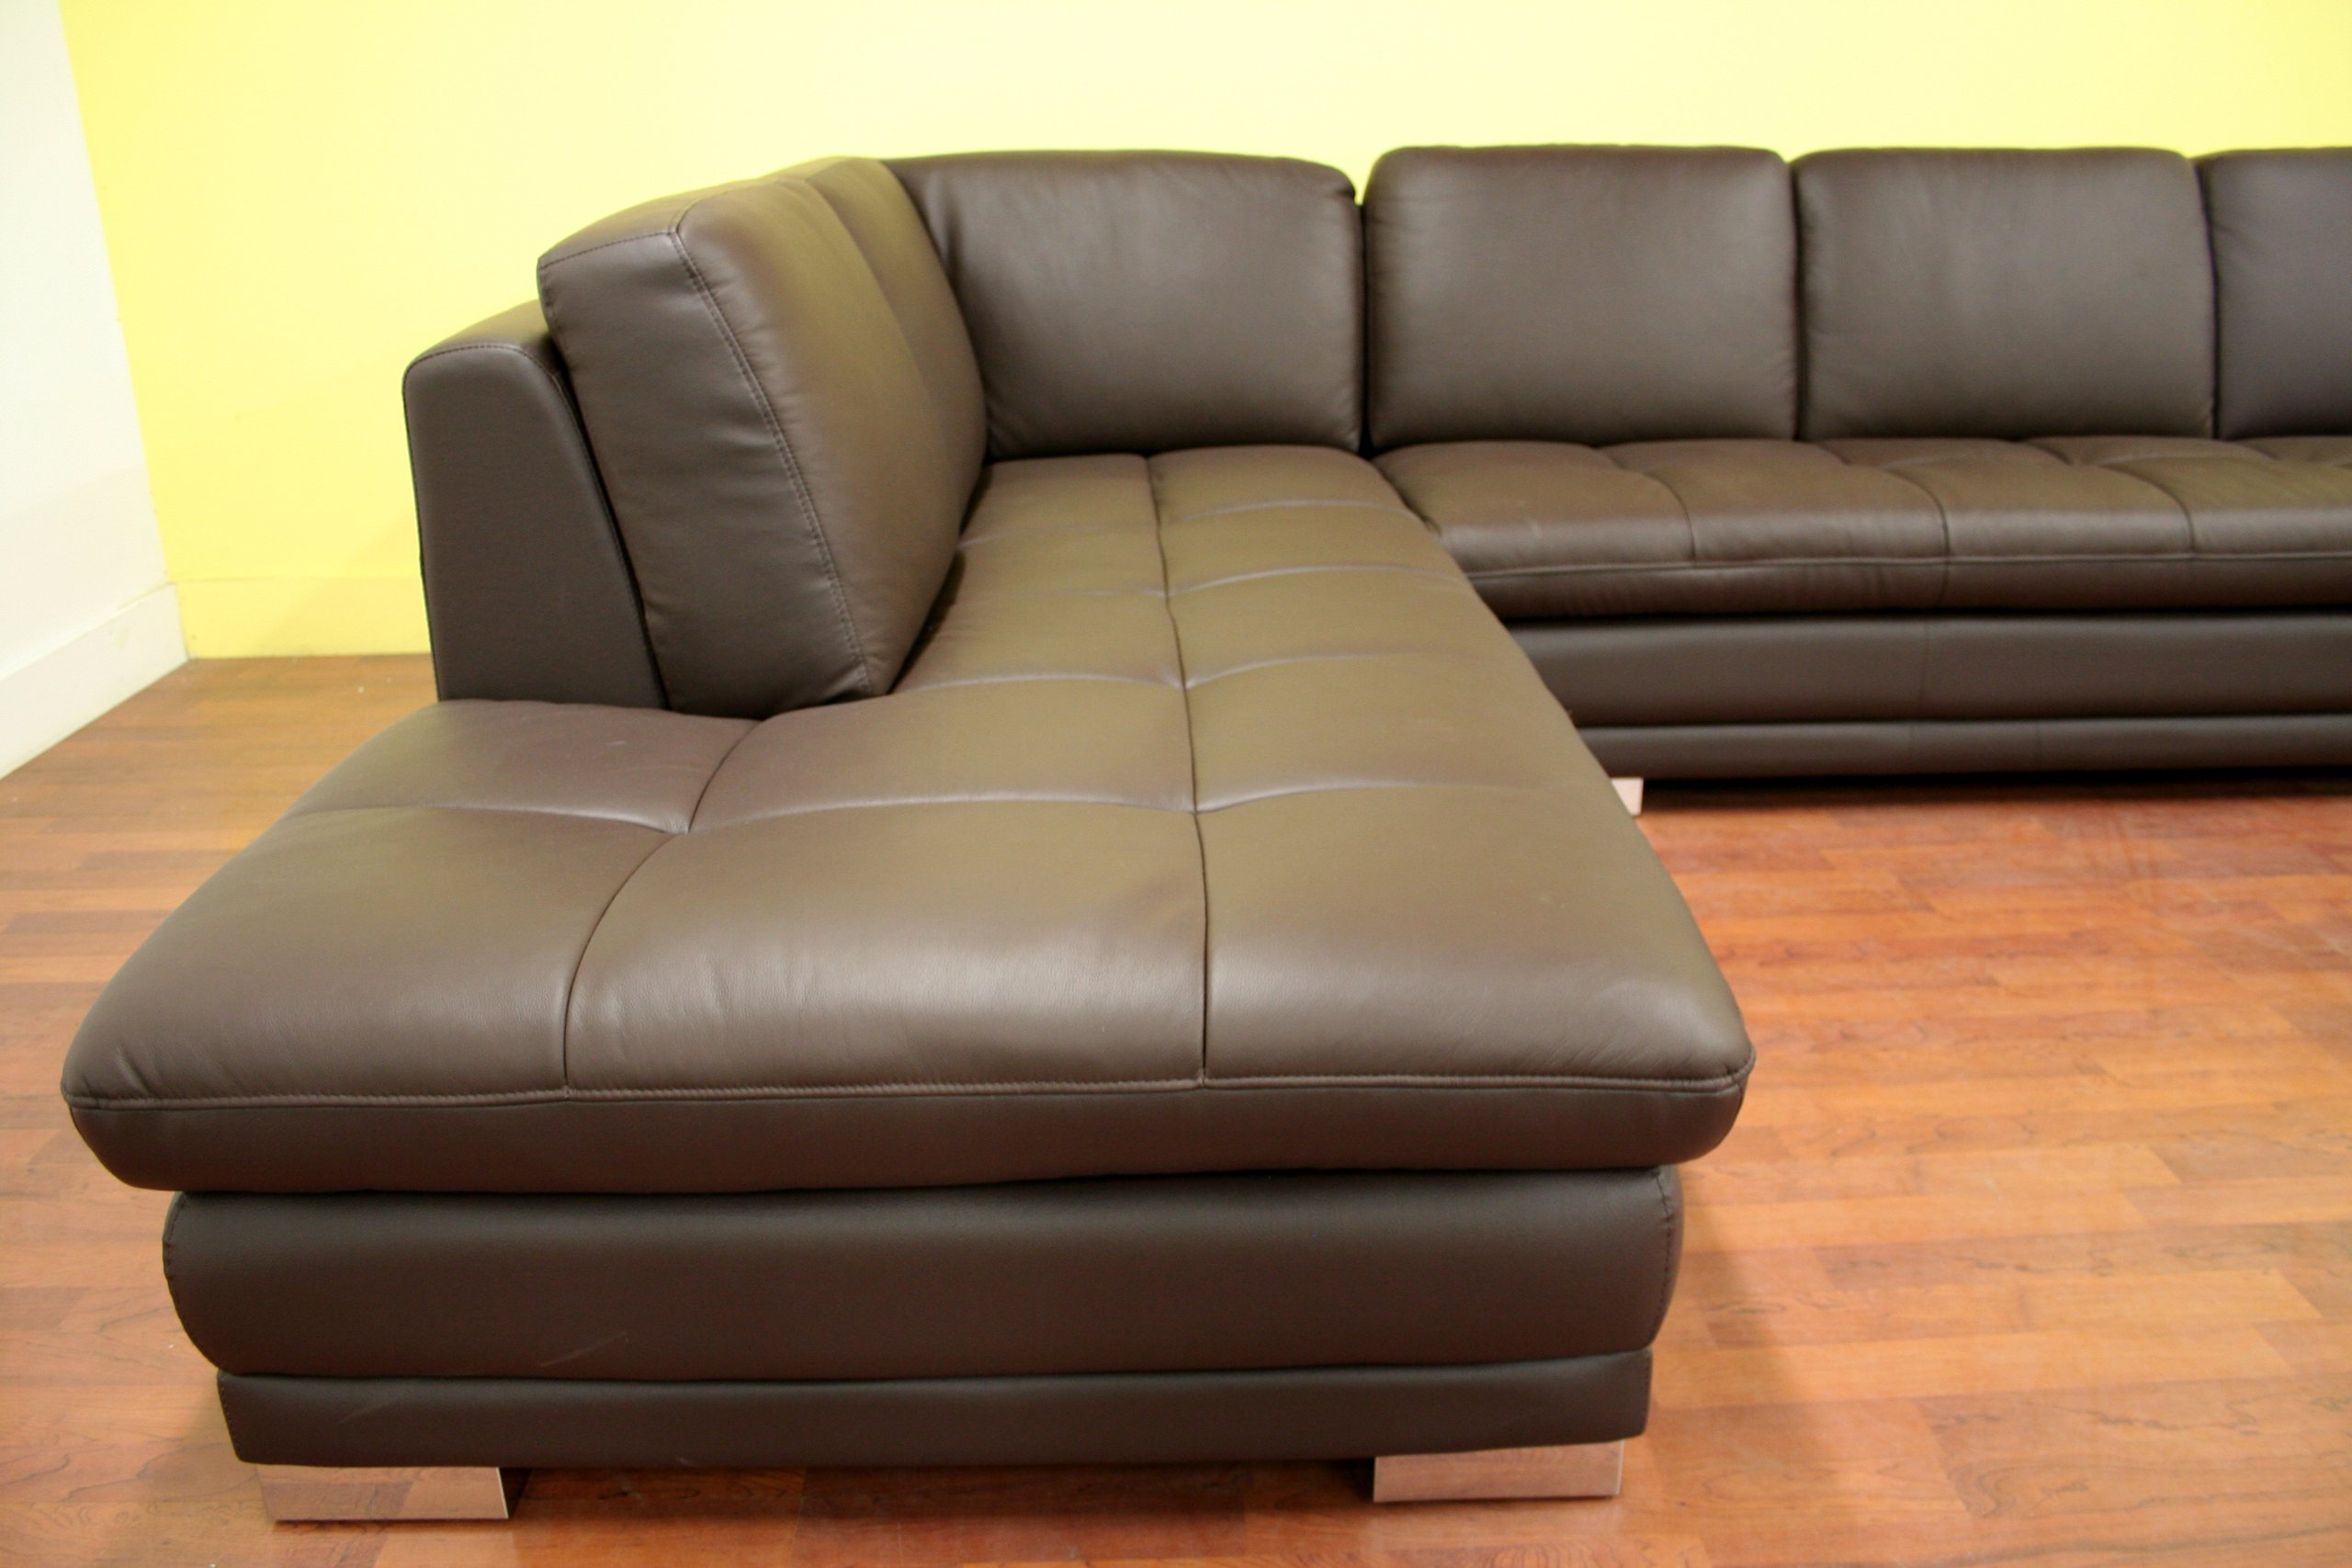 Baxton studio callidora brown leather sectional sofa with for Brown sectional sofa with chaise